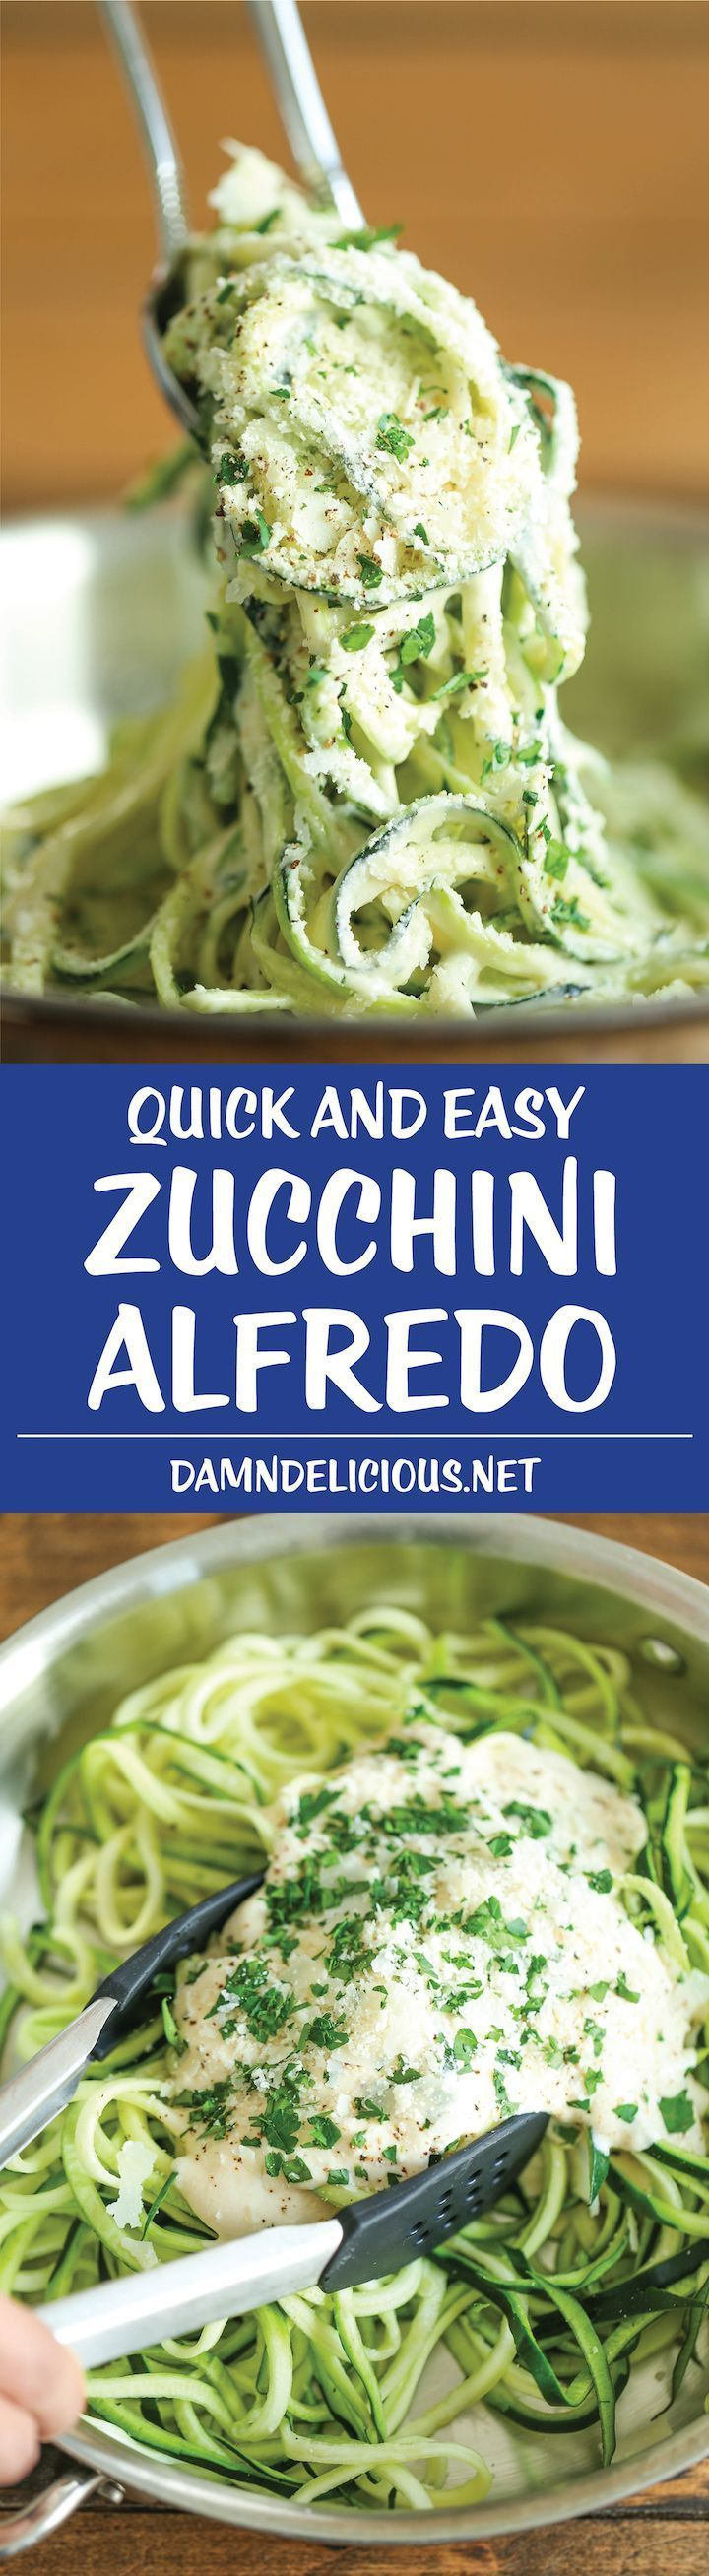 Zucchini Alfredo - Healthy, decadent, amazingly creamy AND low-carb. Finally, a…